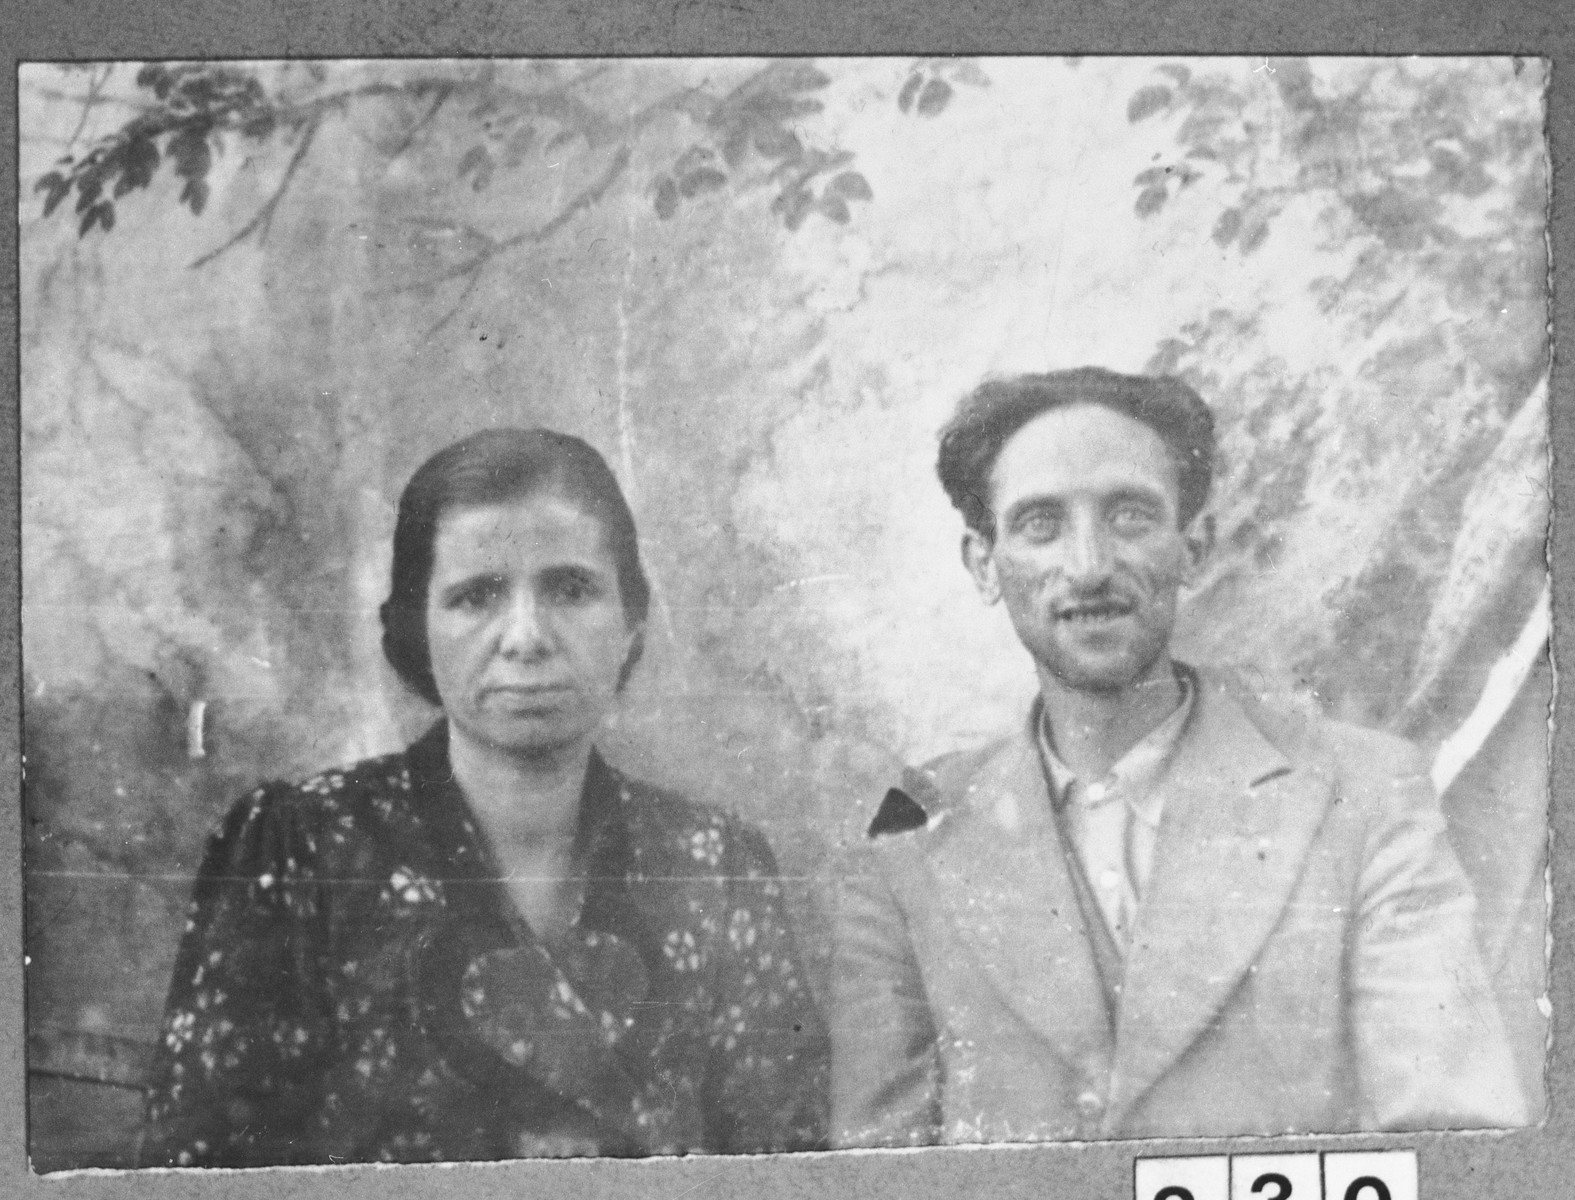 Portrait of Mois Kalderon, son of Samuel Kalderon, and Mois' wife Ana.  They lived at Zmayeva 17 in Bitola.